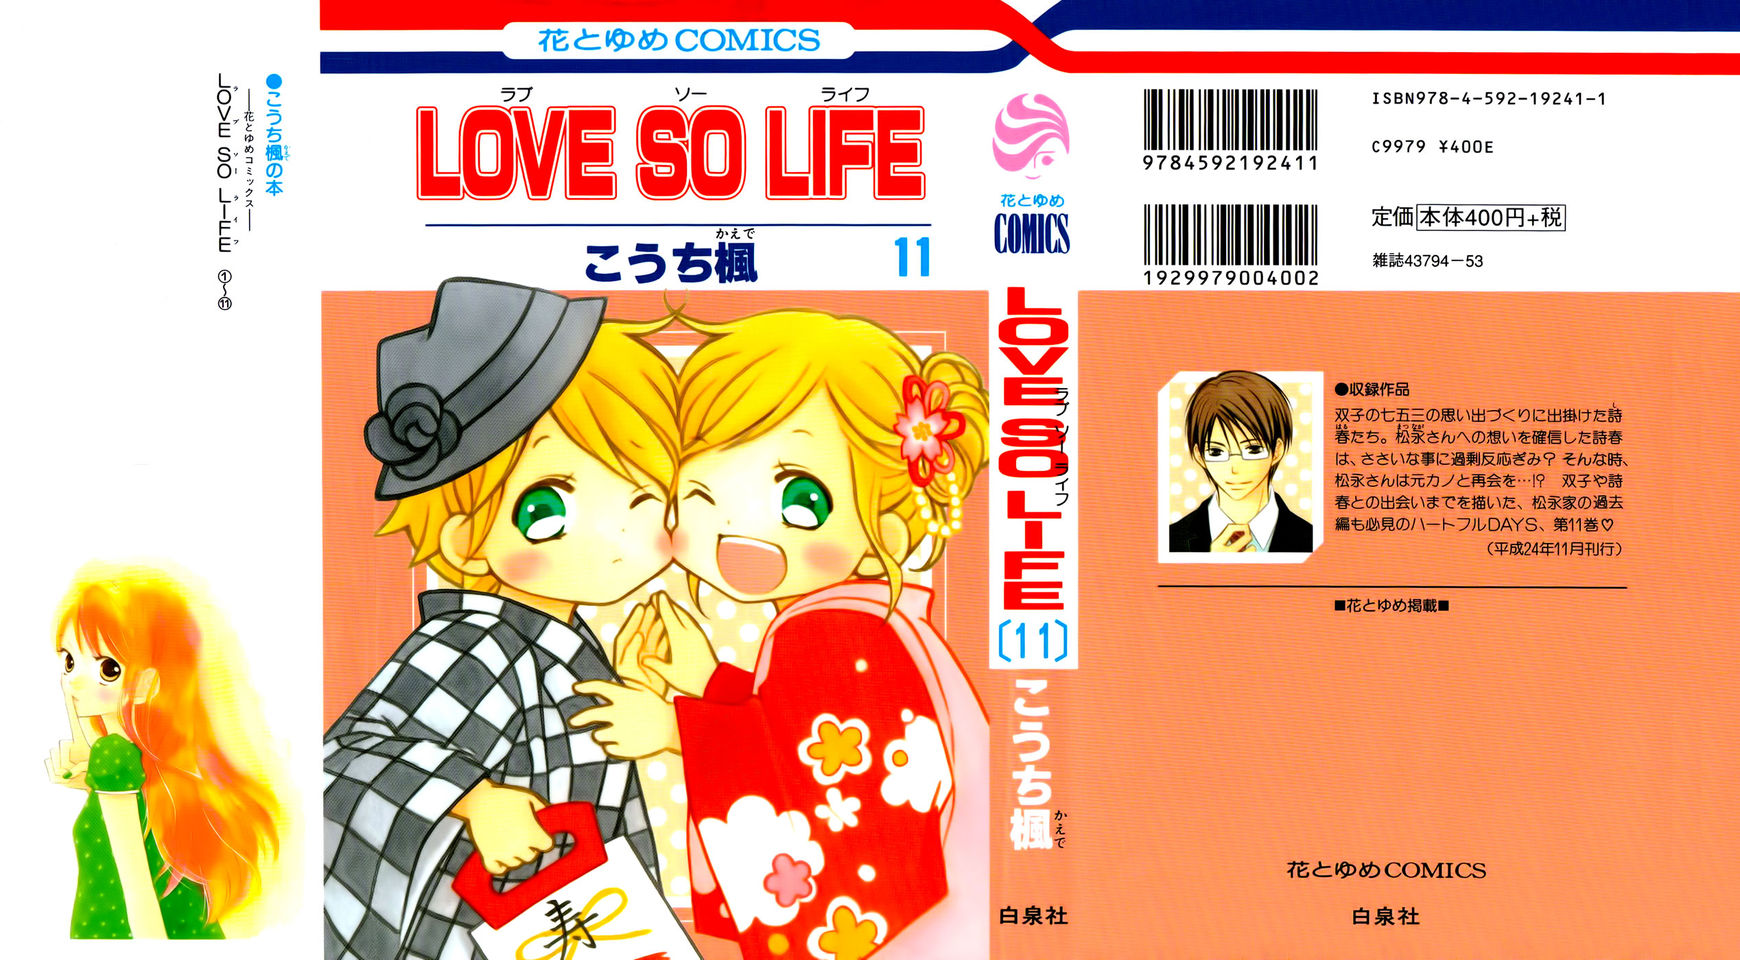 Love So Life 58 Page 1